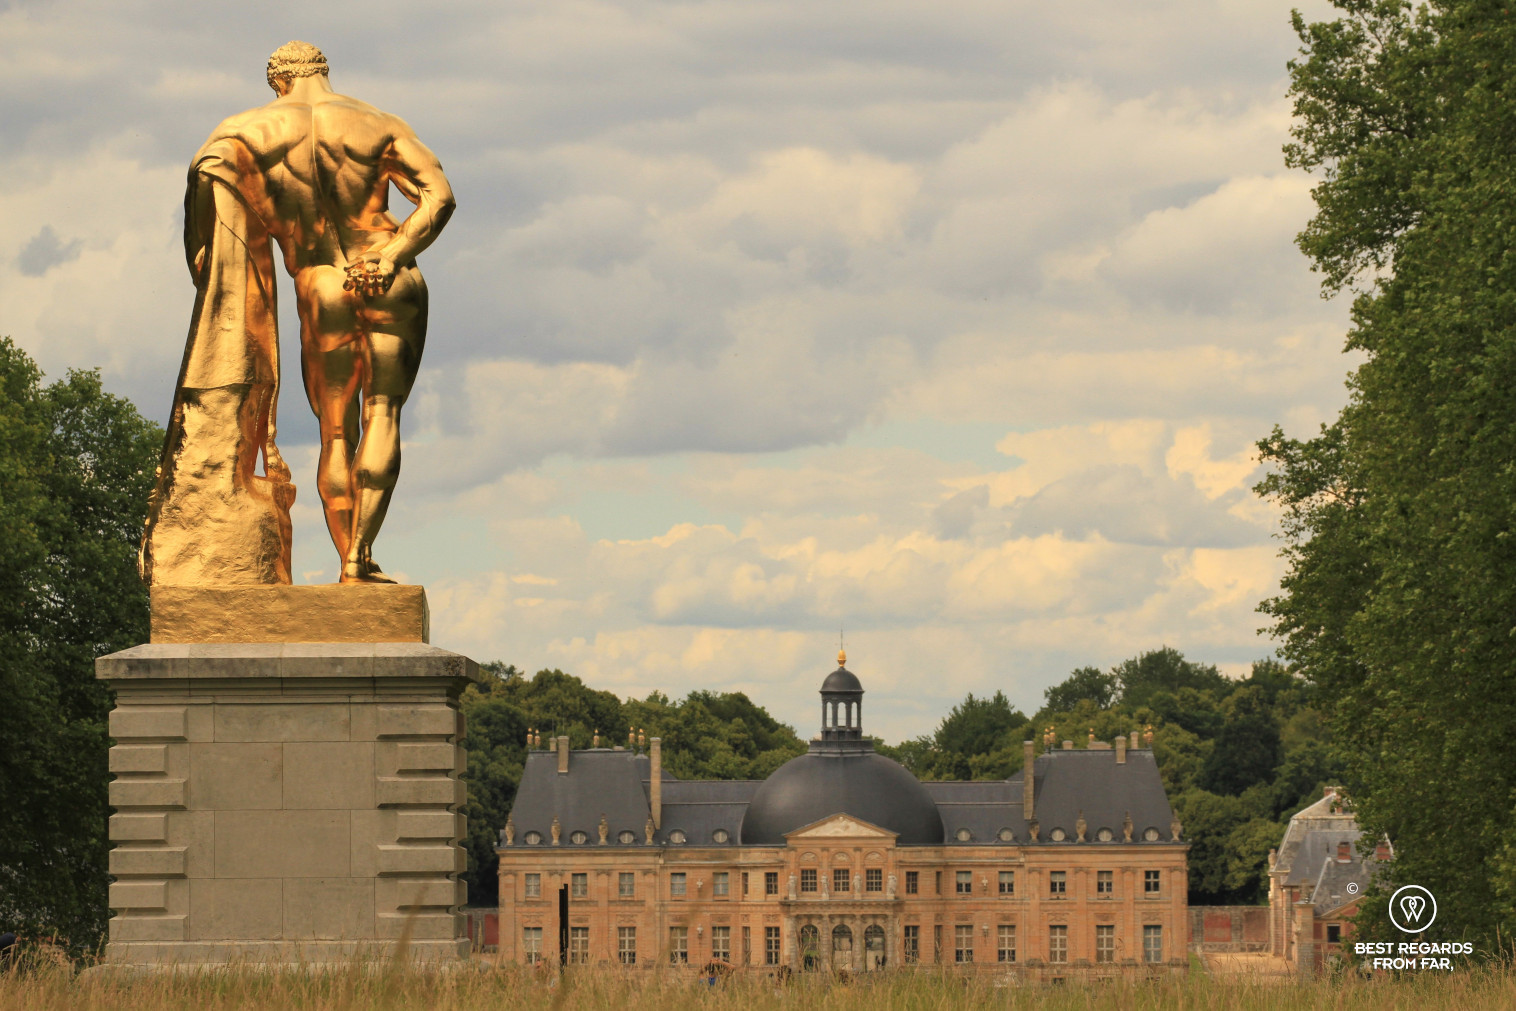 The castle of Vaux le Vicomte seen from the French garden with the golden sculpture of Hercule.